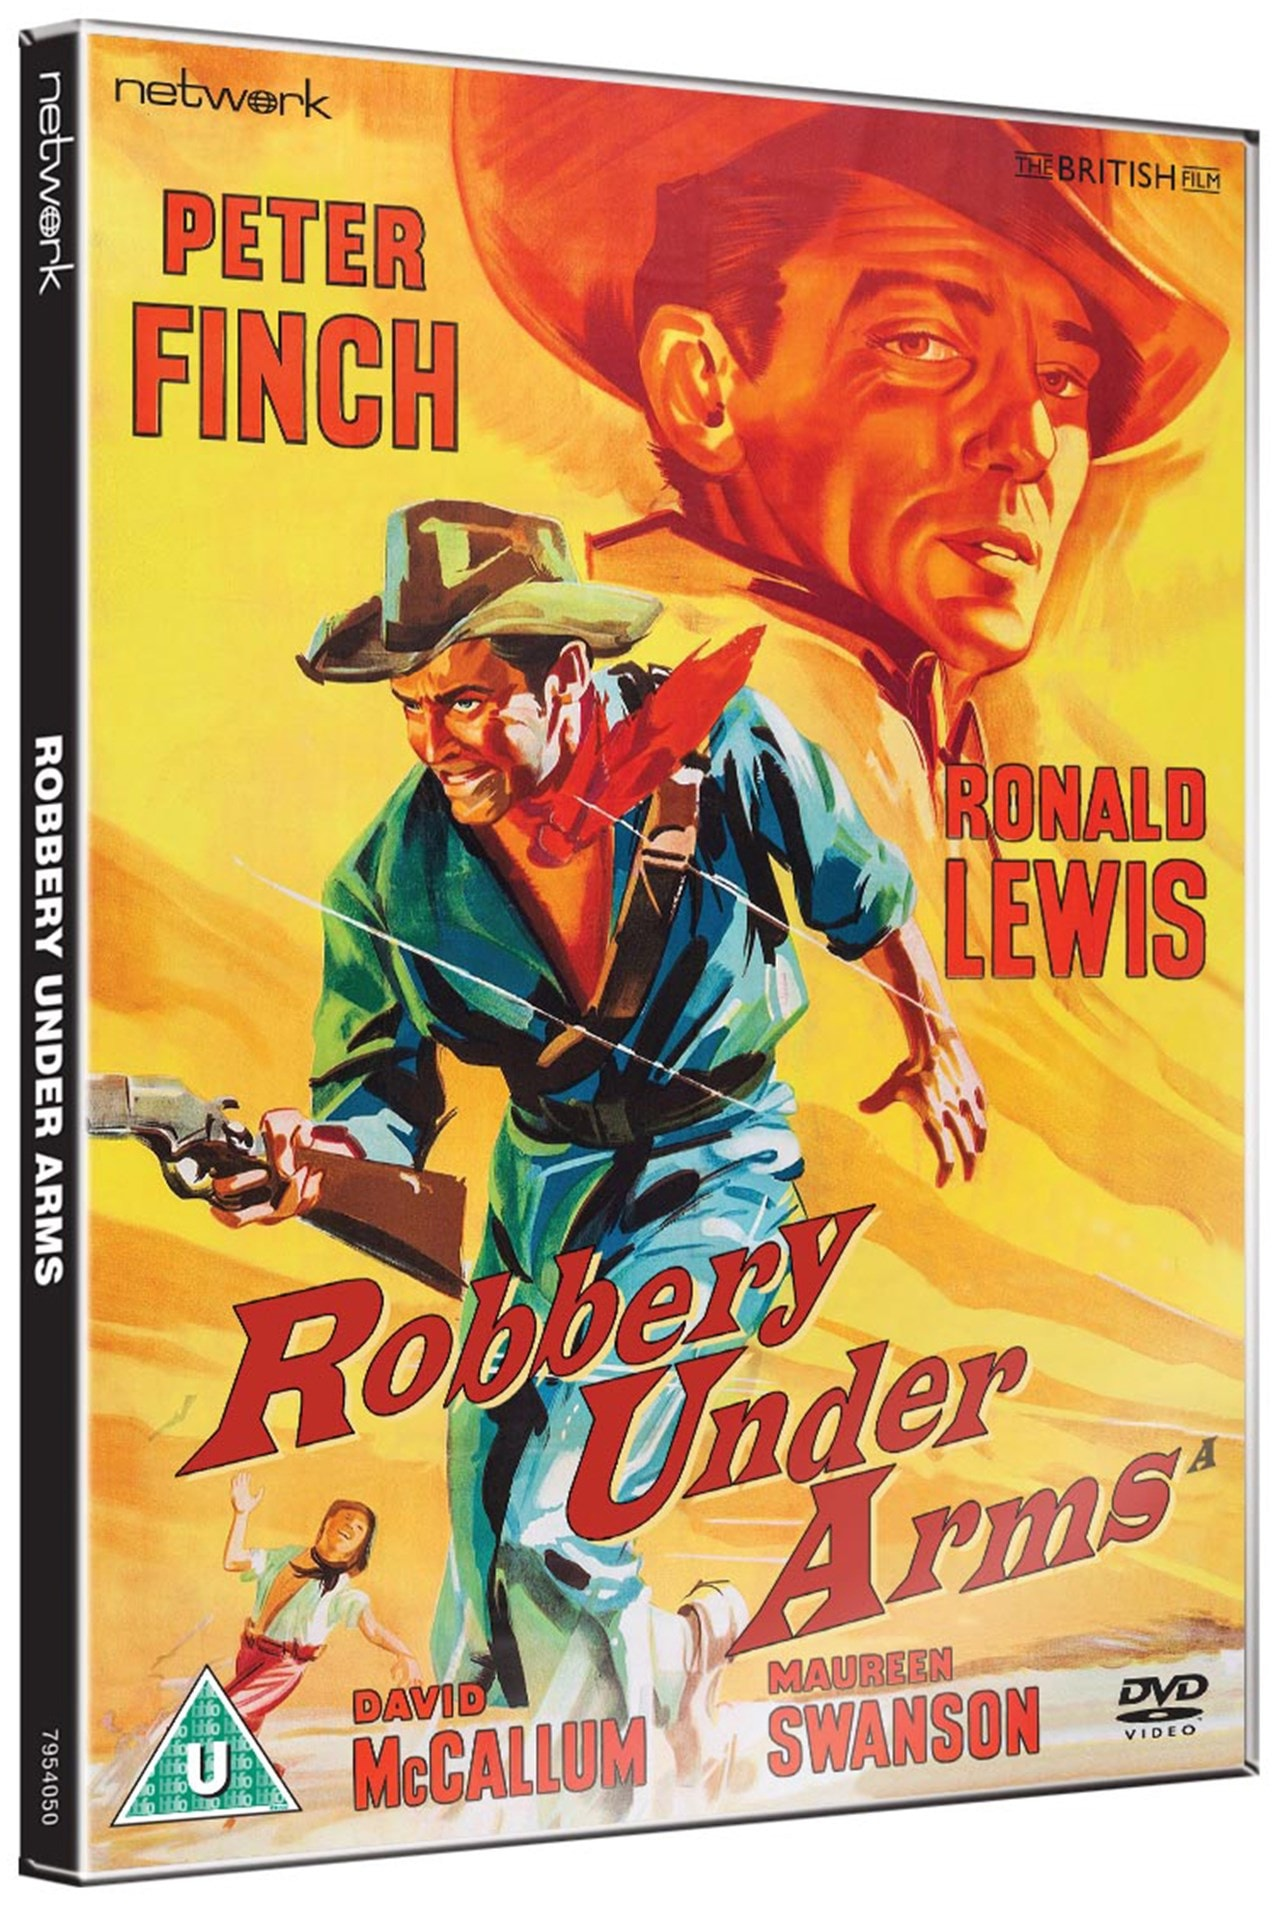 Robbery Under Arms - 2